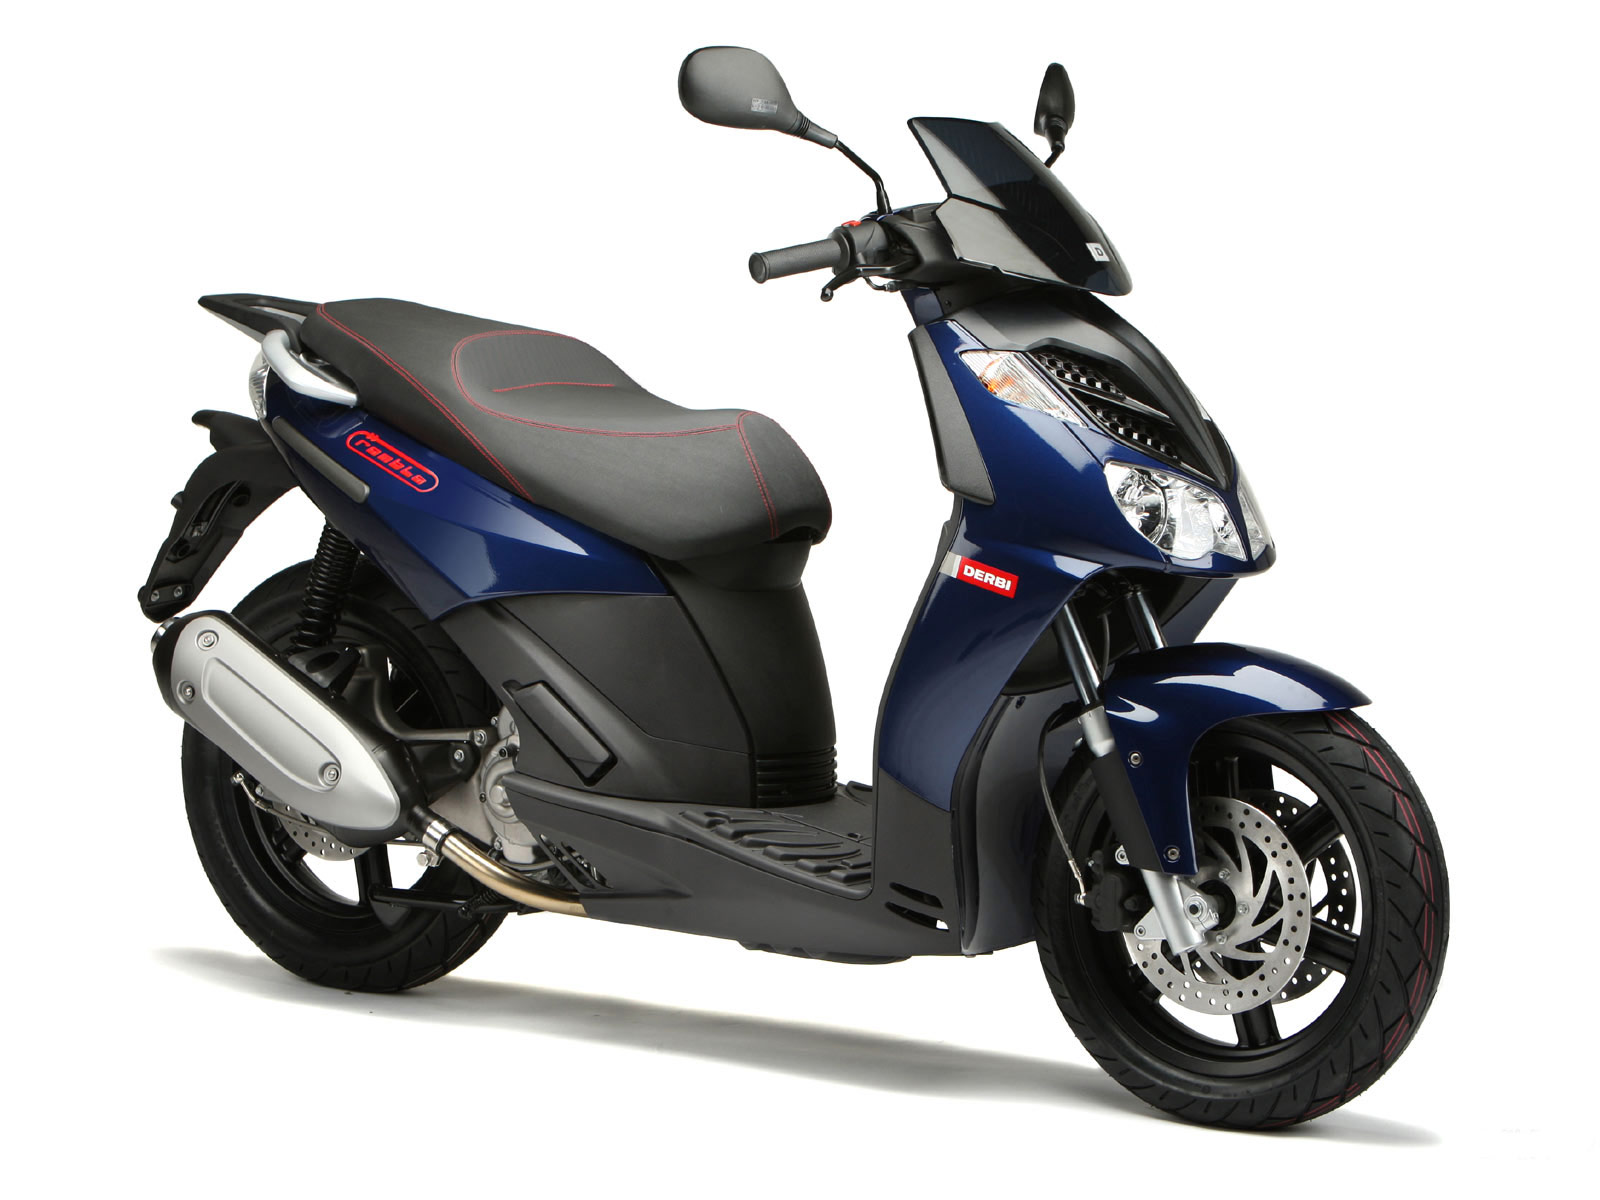 2008 Derbi Rambla 250 Scooter Picture Accident Lawyers